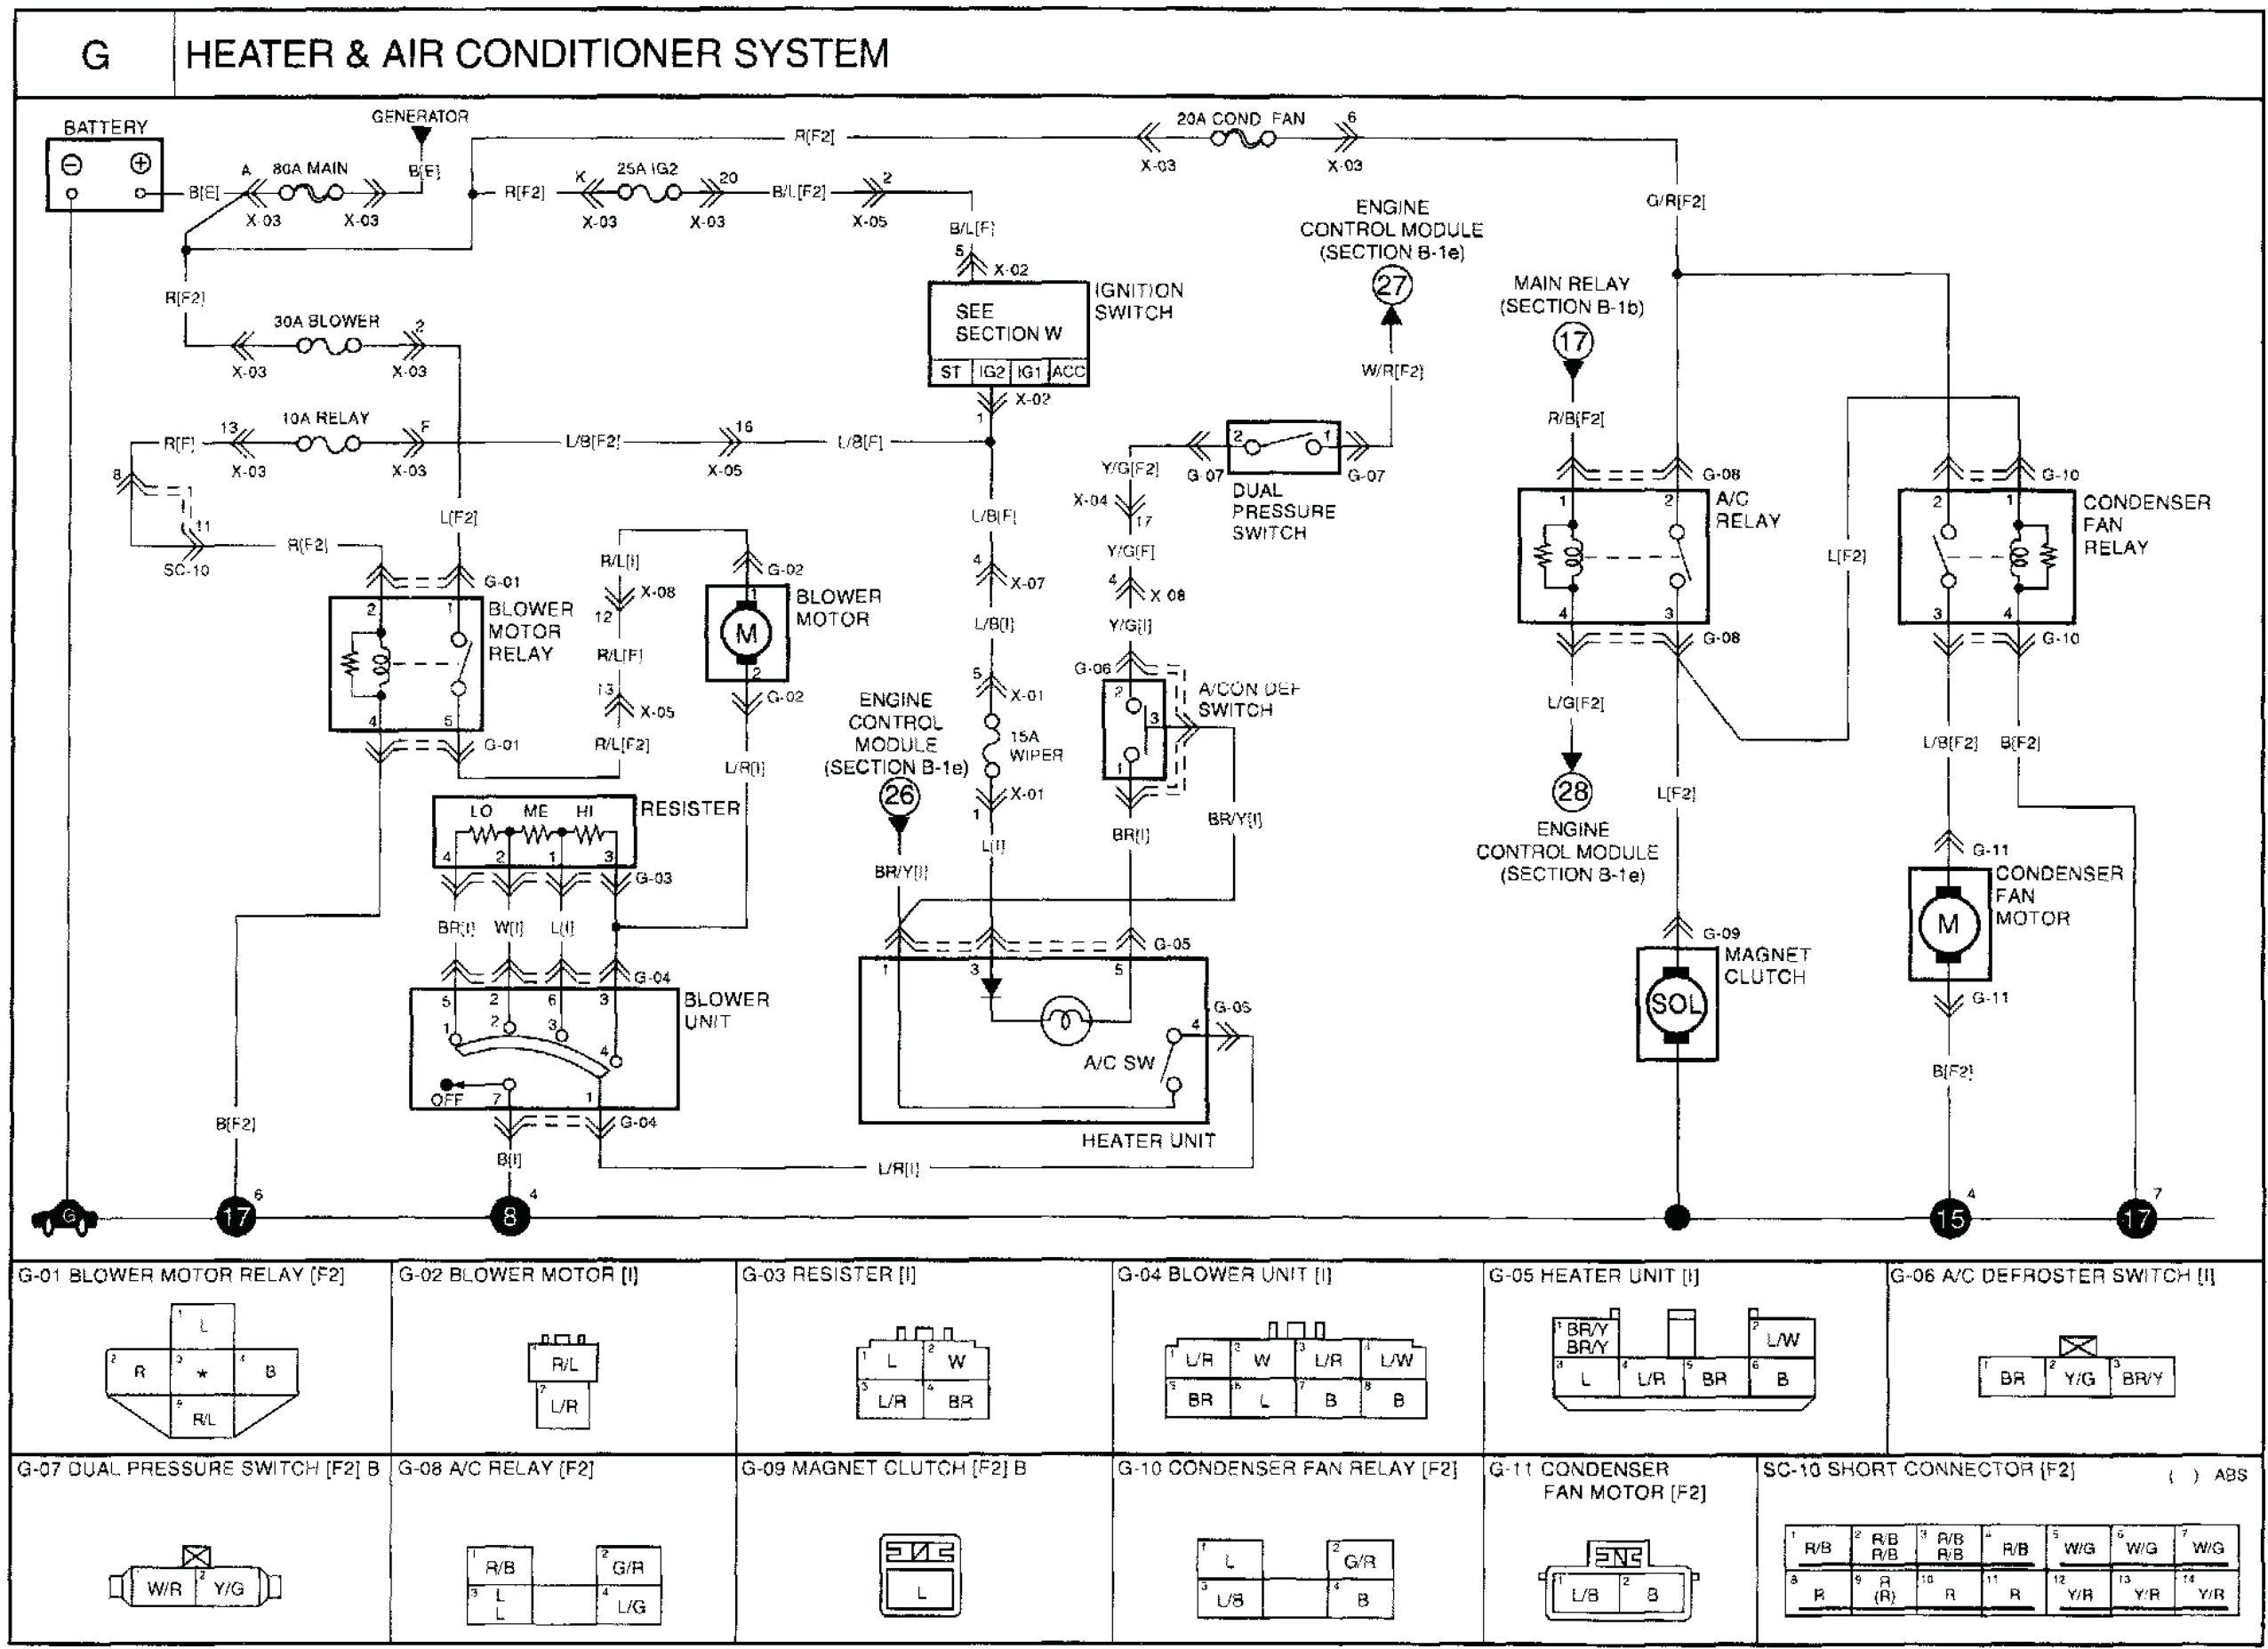 2009 kia spectra wiring diagram pdf  u2022 wiring diagram for free